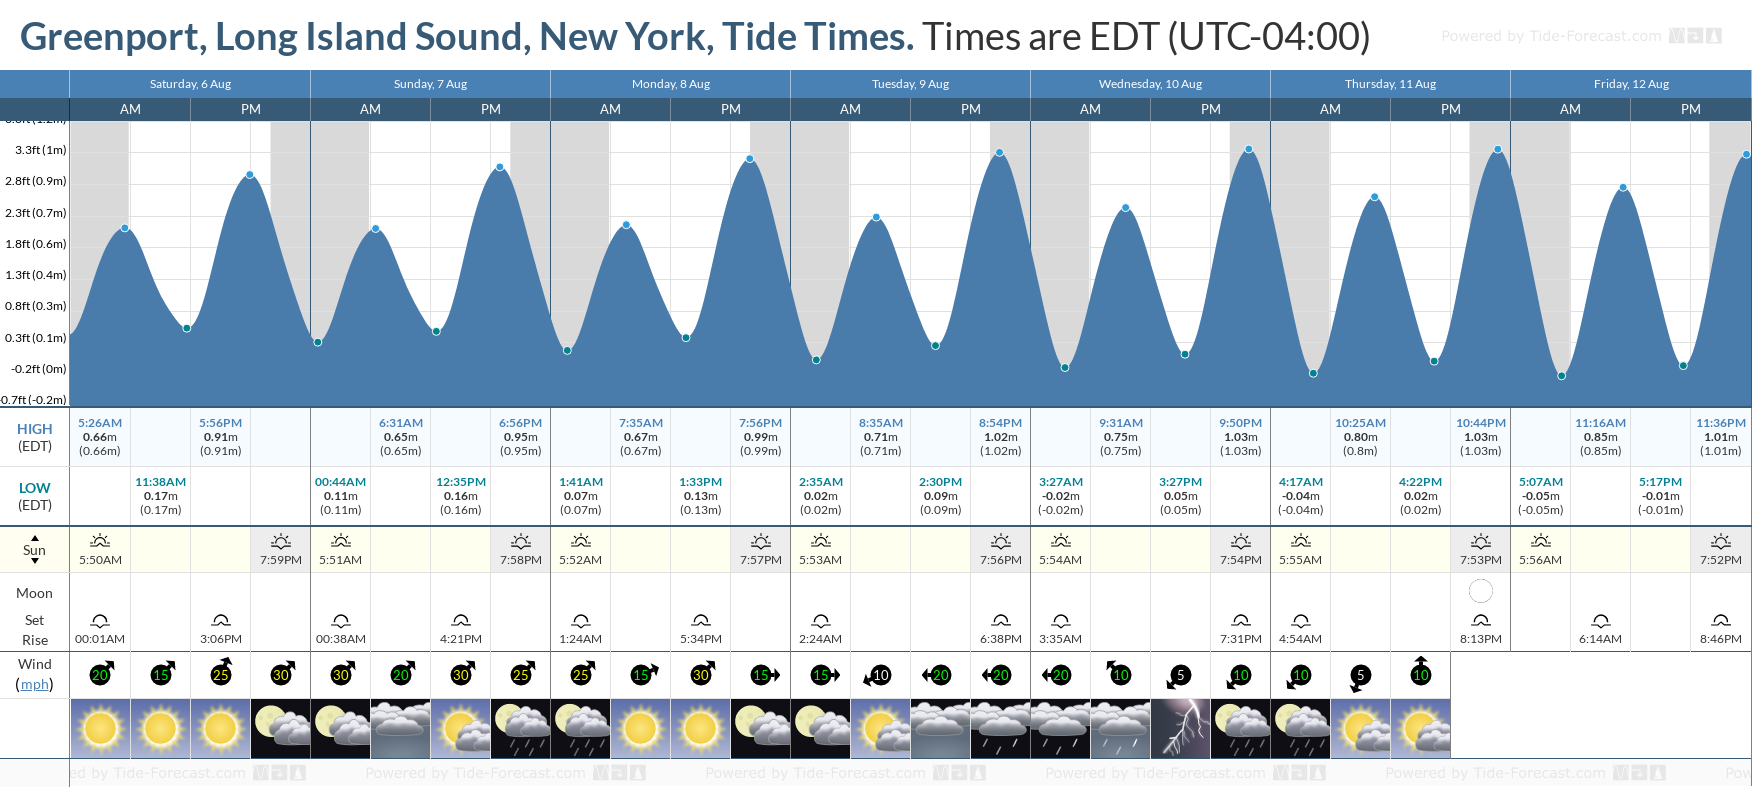 Greenport, Long Island Sound, New York Tide Chart including high and low tide tide times for the next 7 days